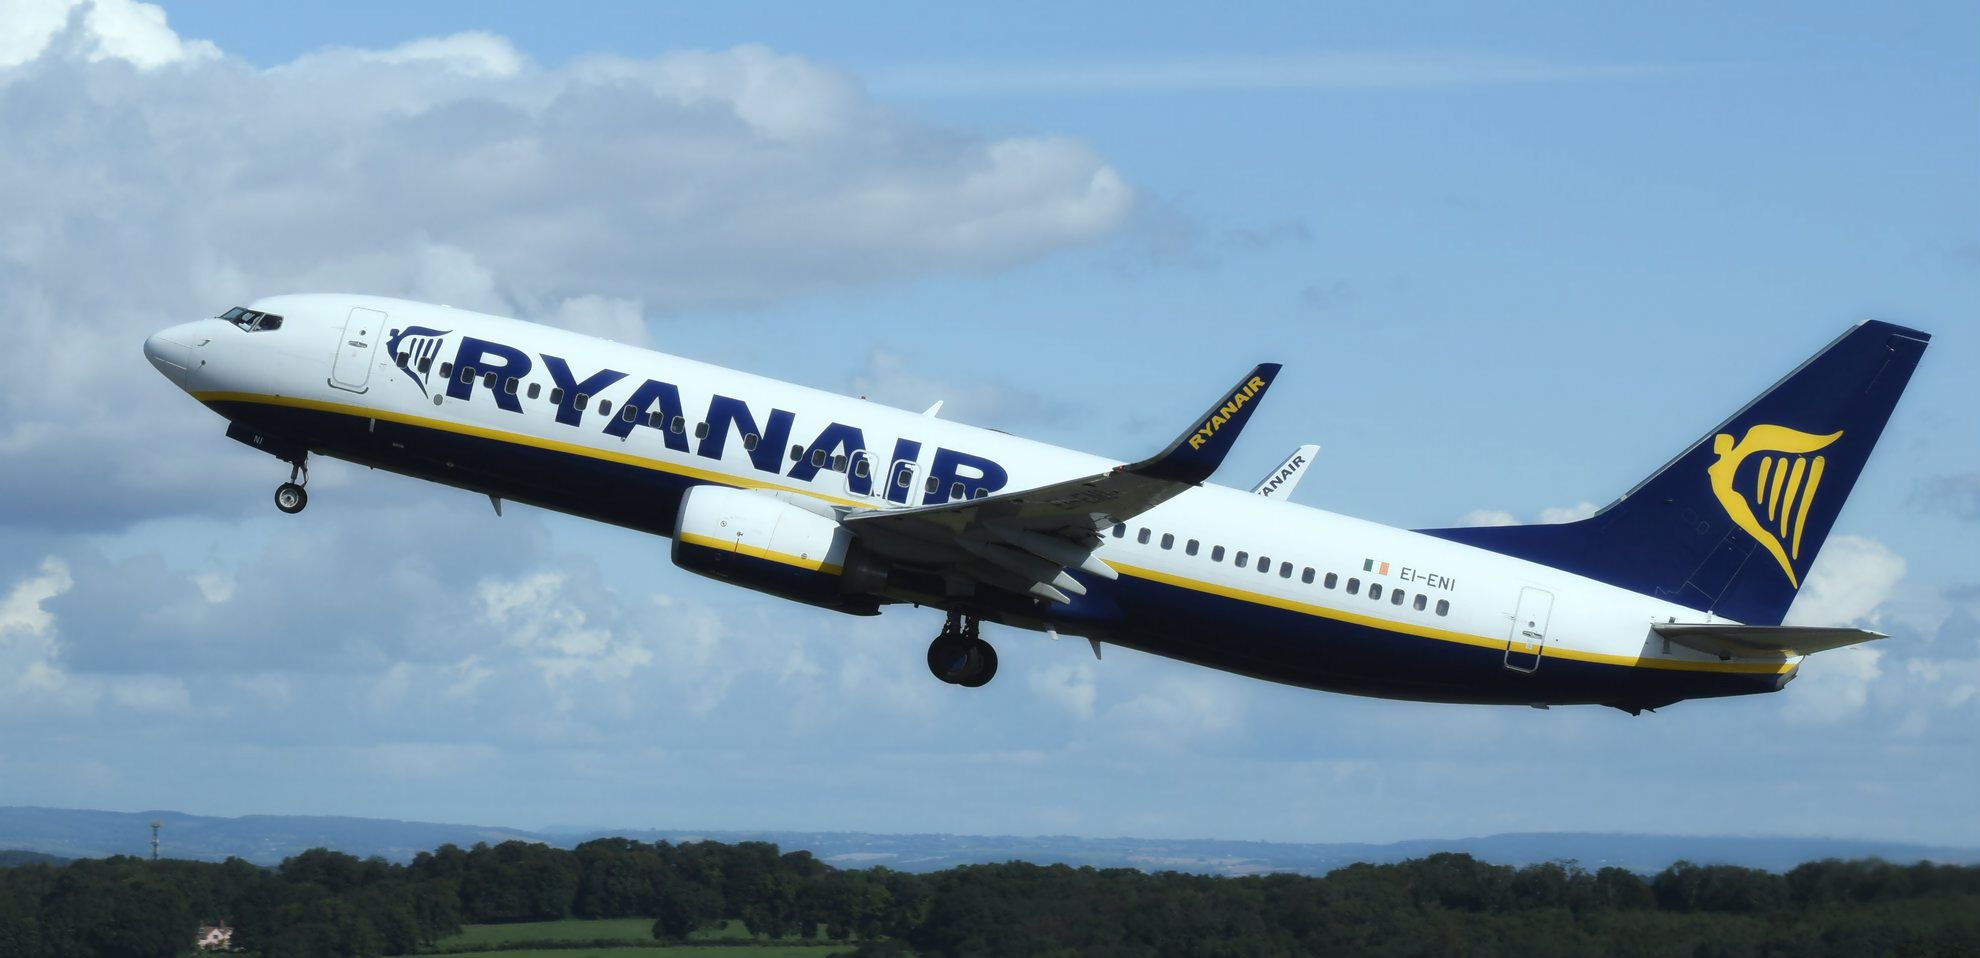 brief-history-of-ryanair-on-ryanairmag